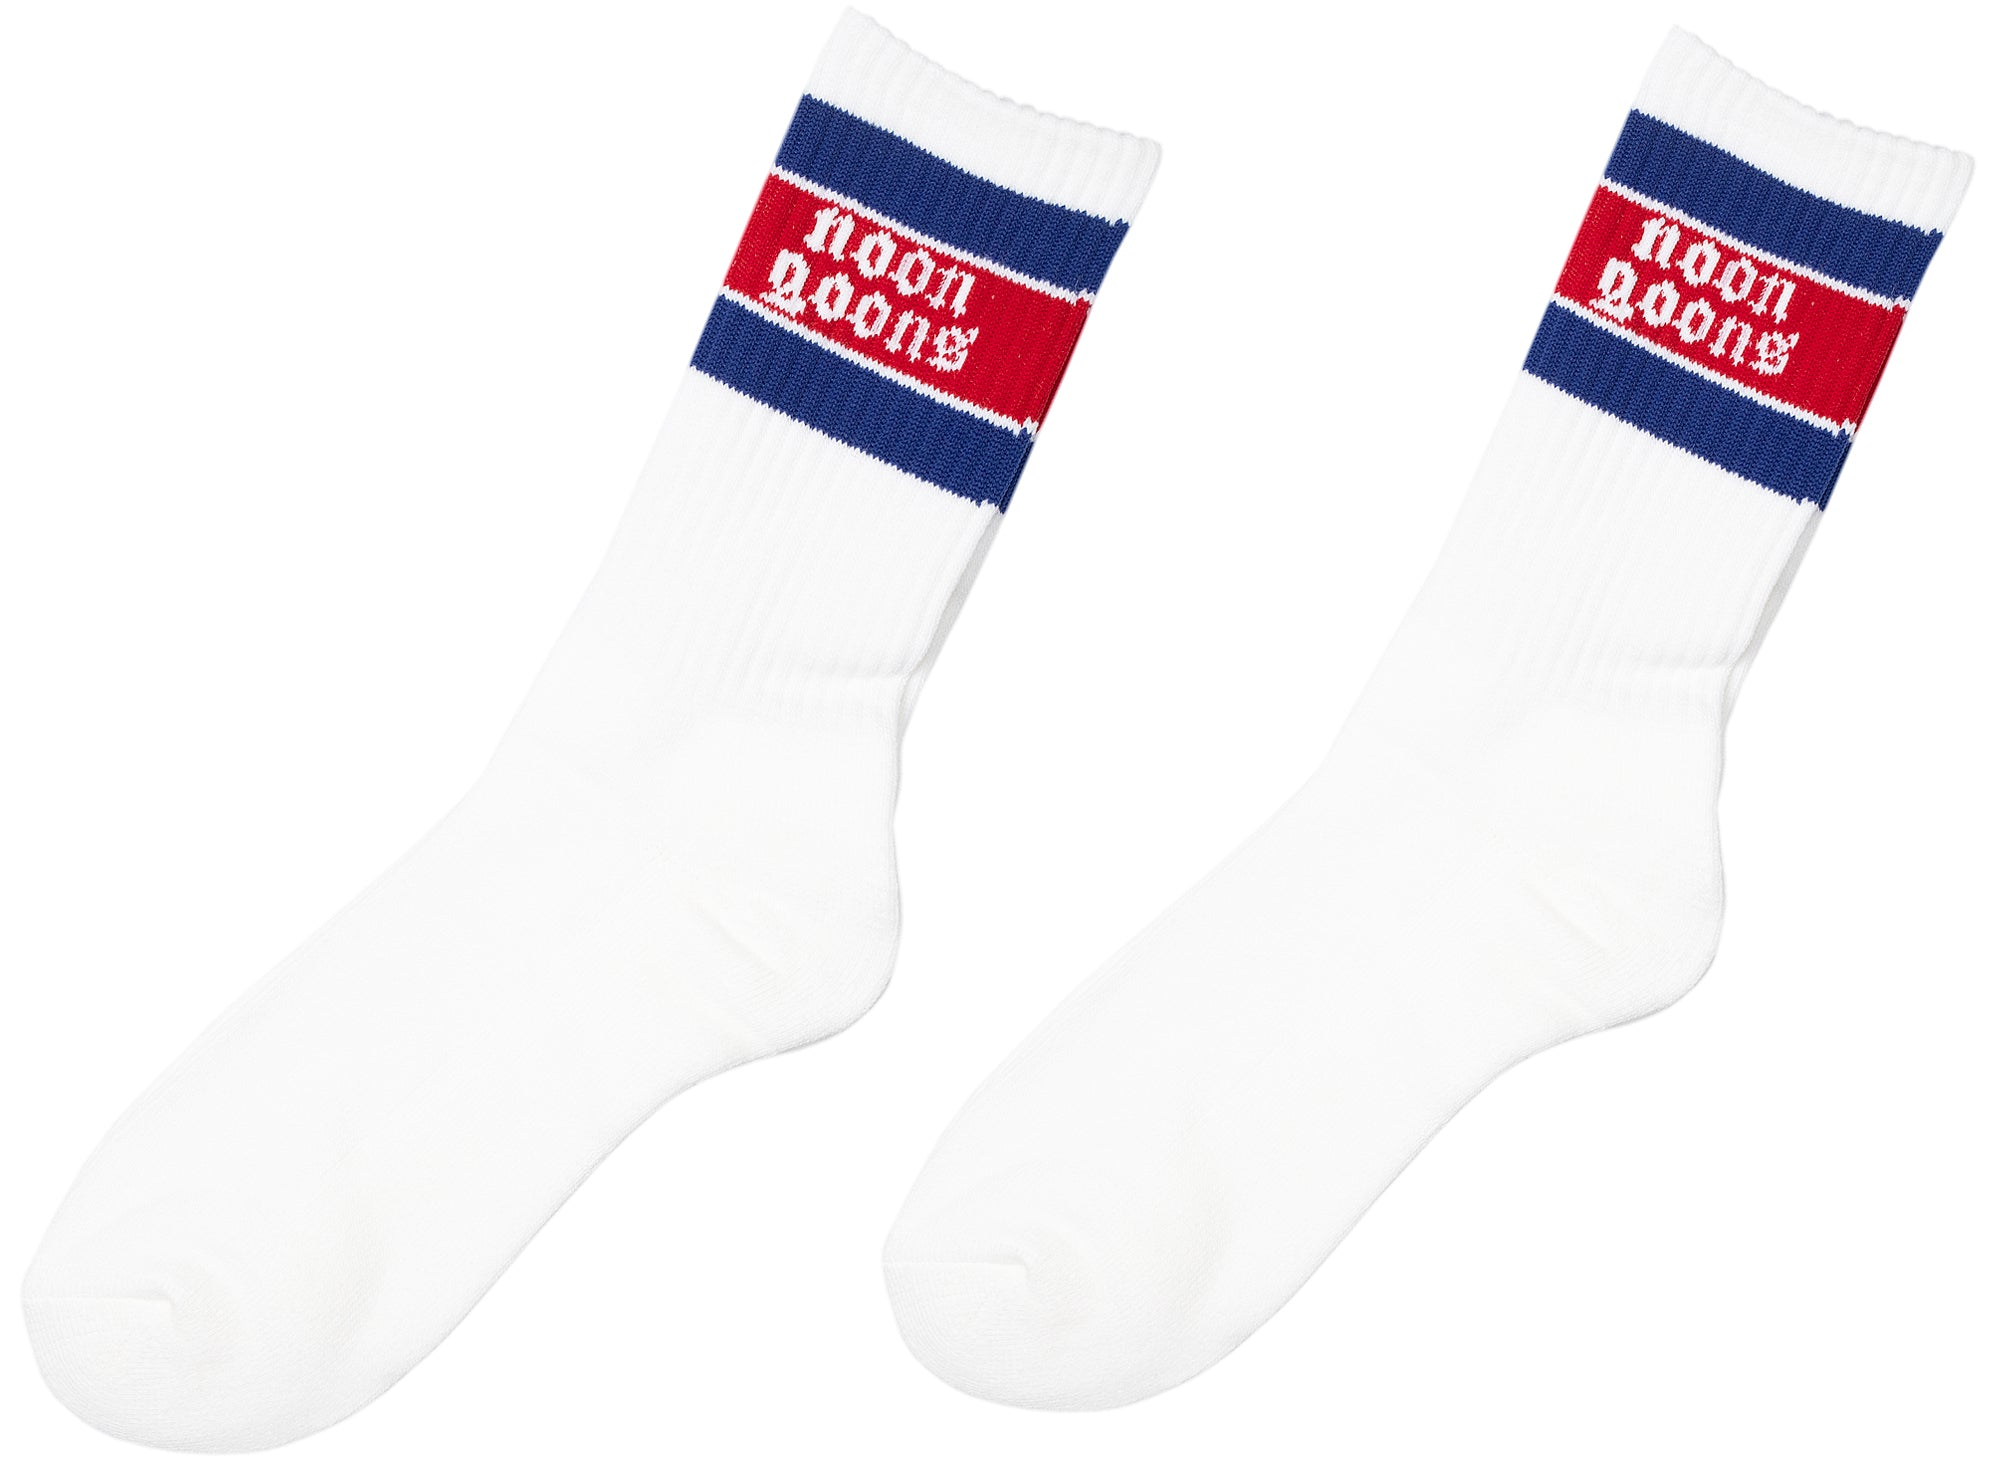 Noon Goons Stop Sox (2 Pack) 'Red/Blue'